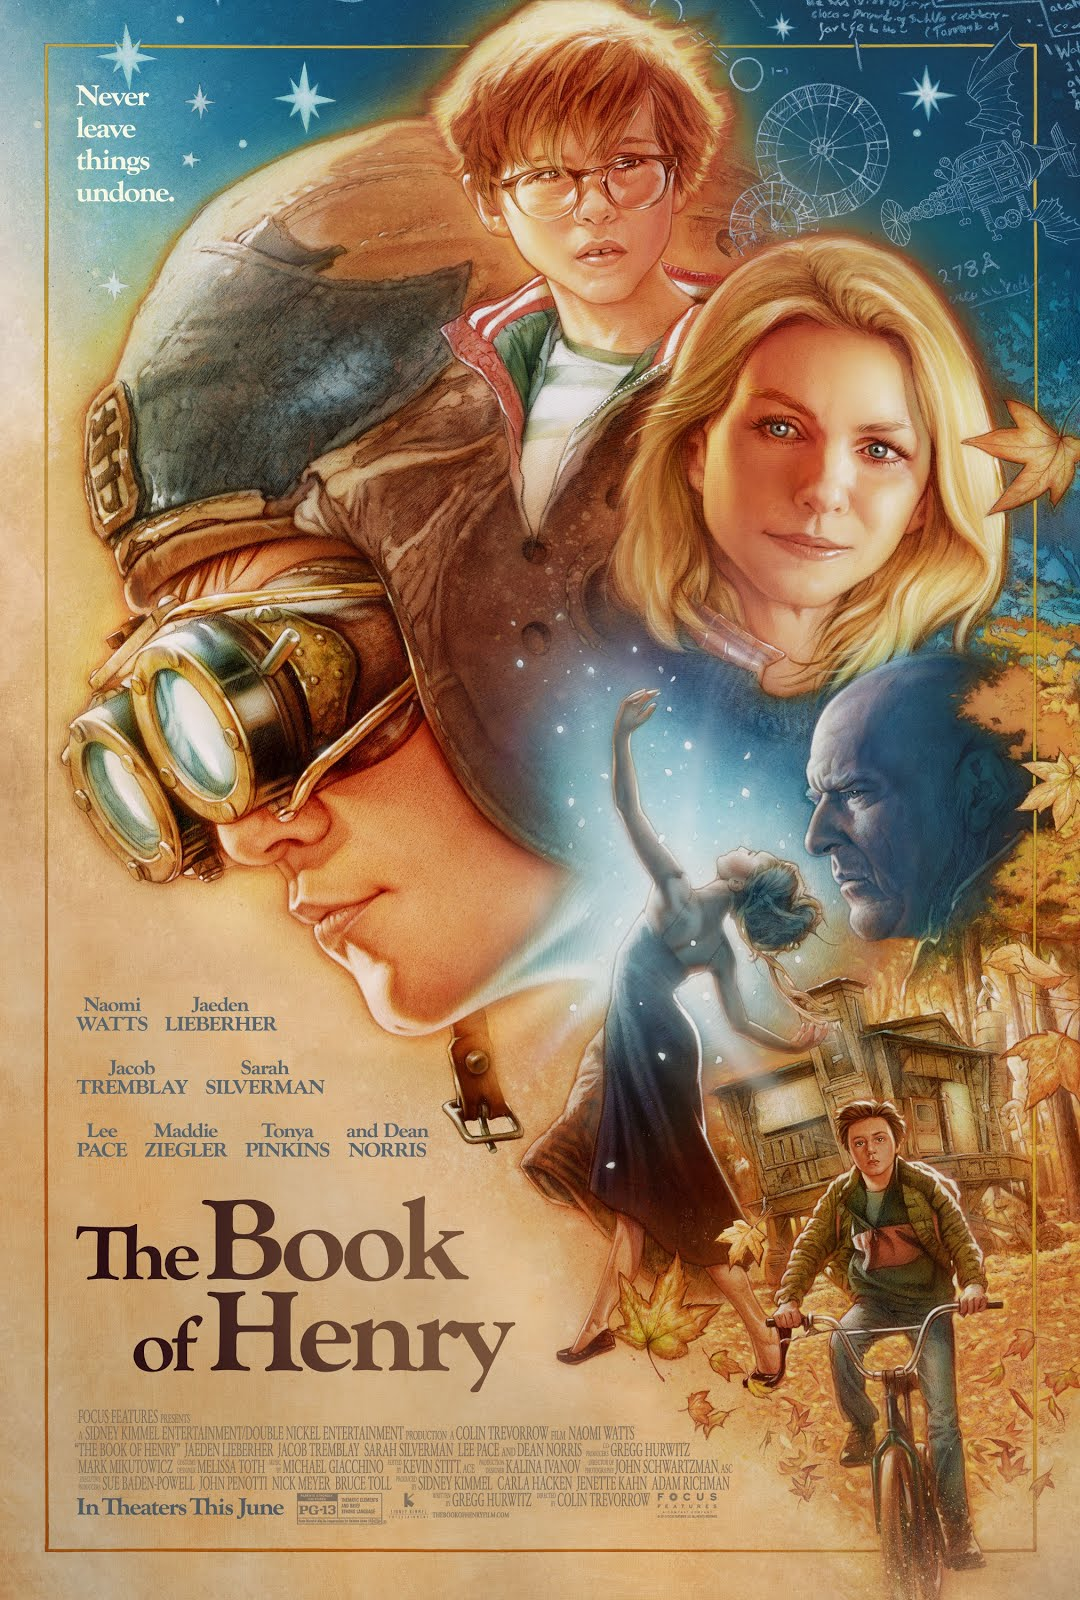 HD0726 - The Book Of Henry 2017 - Cuốn Sổ Của Henry